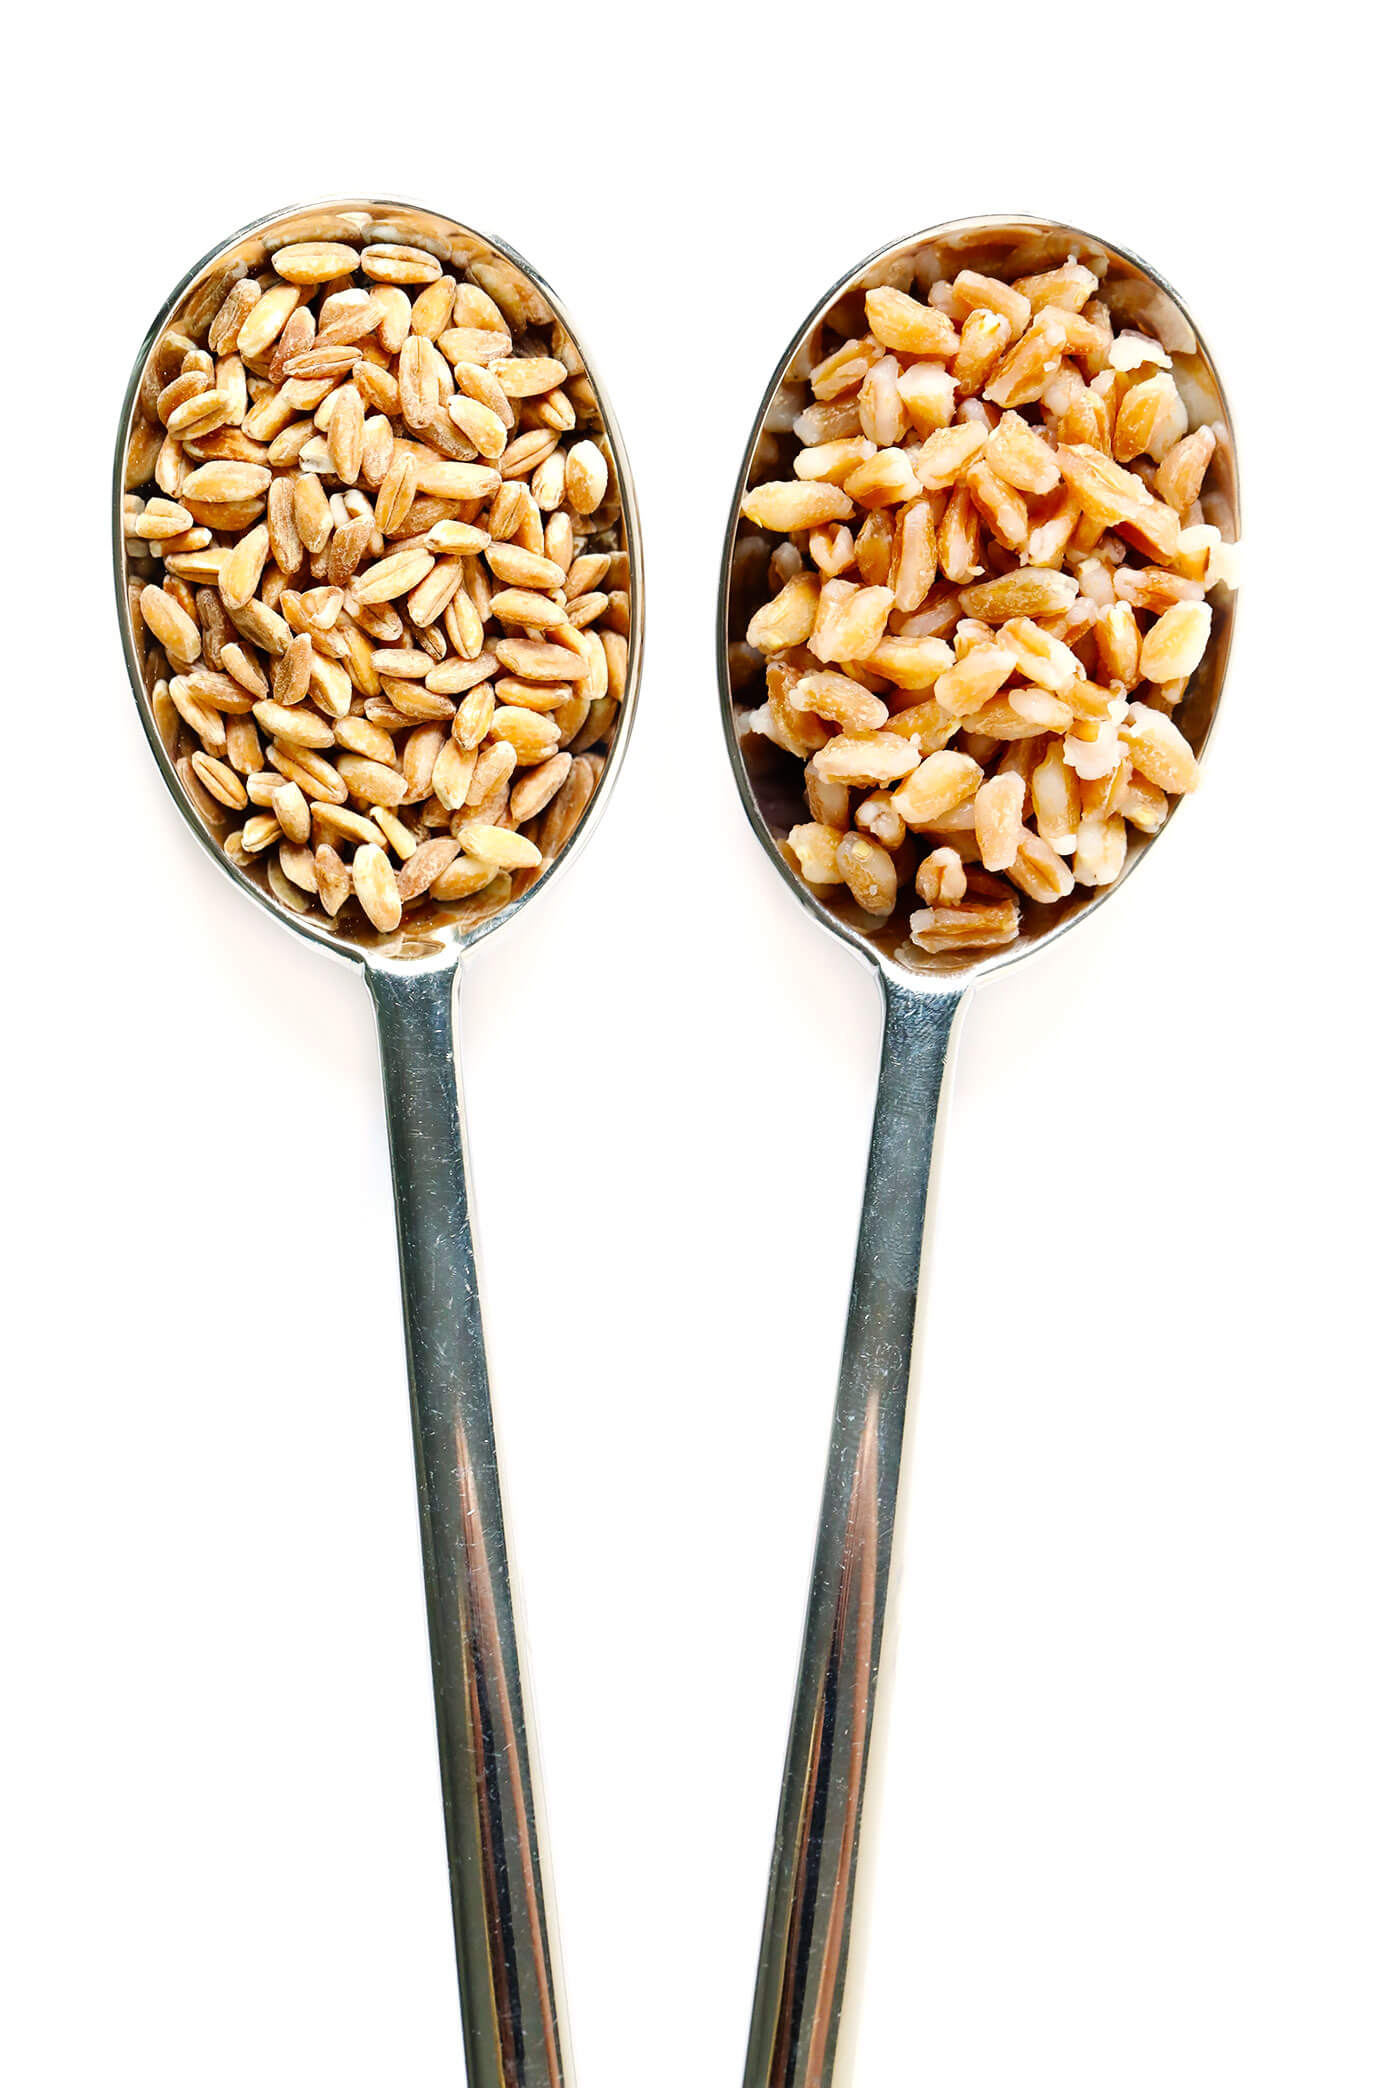 Cooked and Uncooked Farro